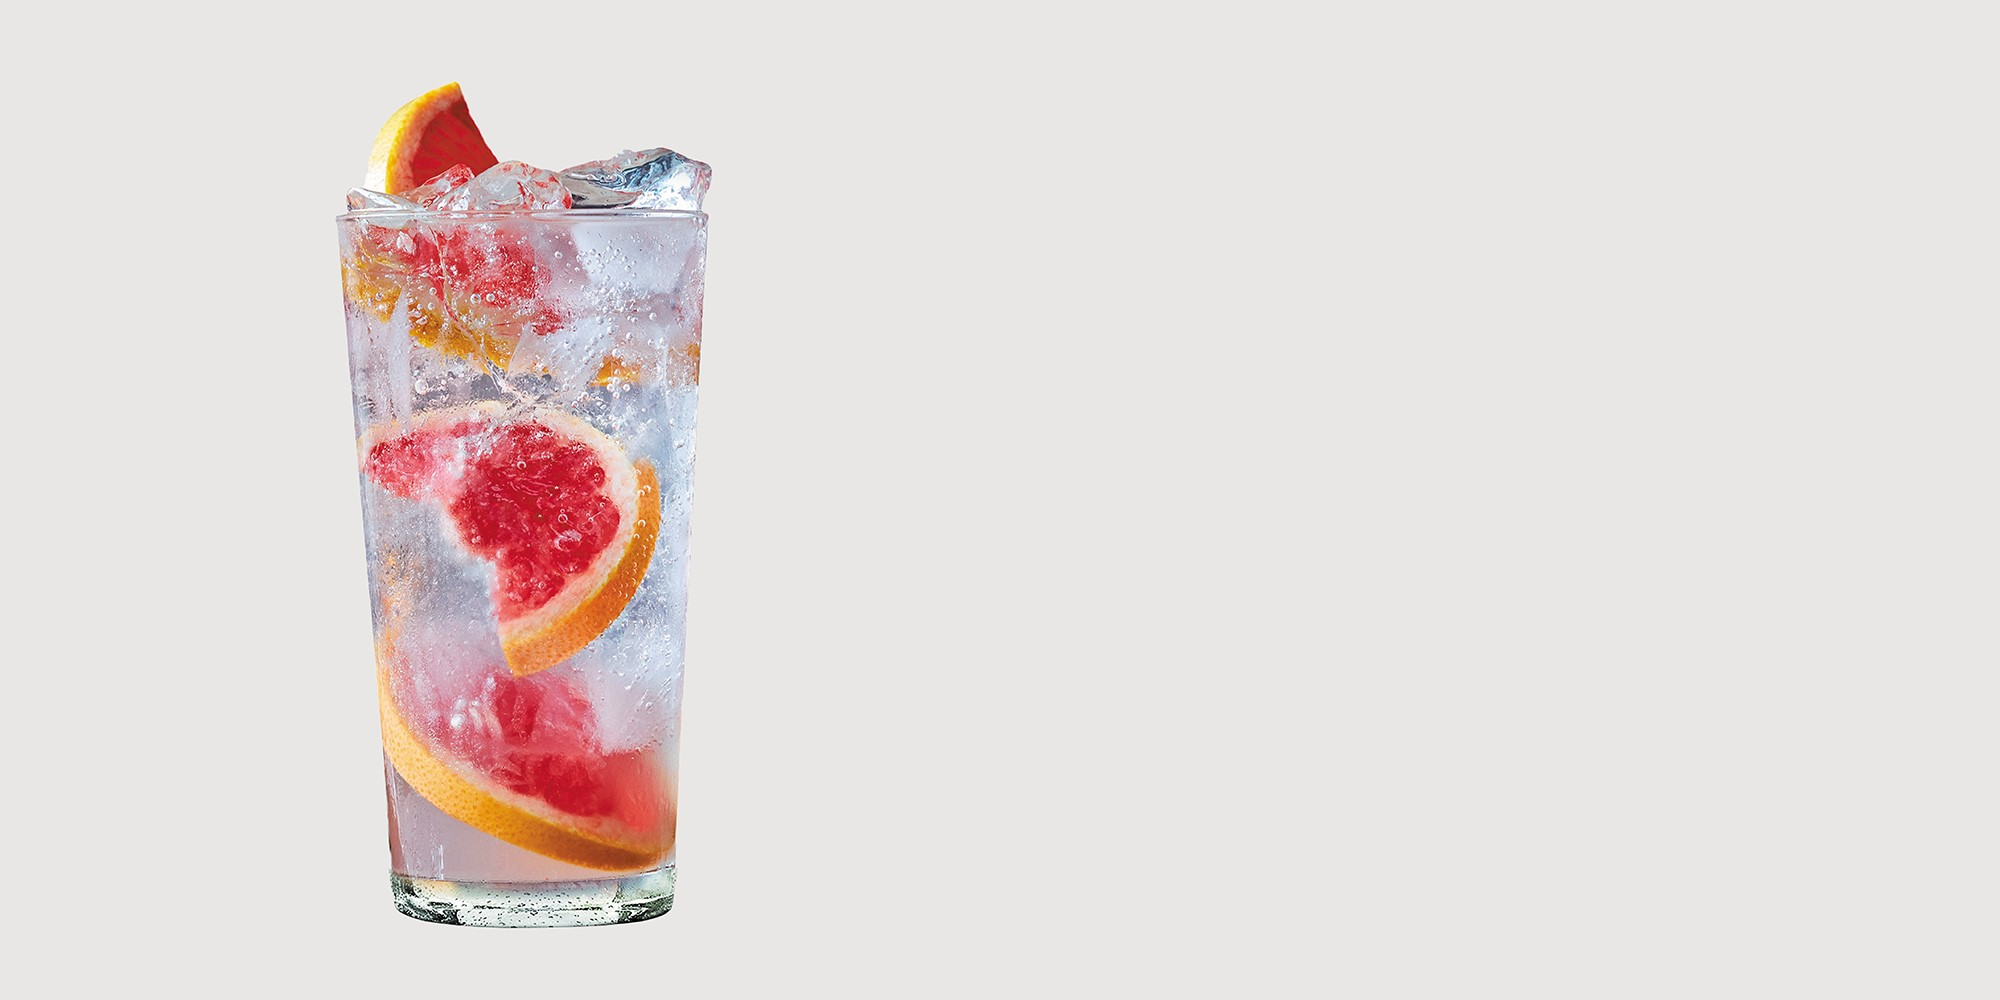 ​SMIRNOFF SODA FRUIT SMASH